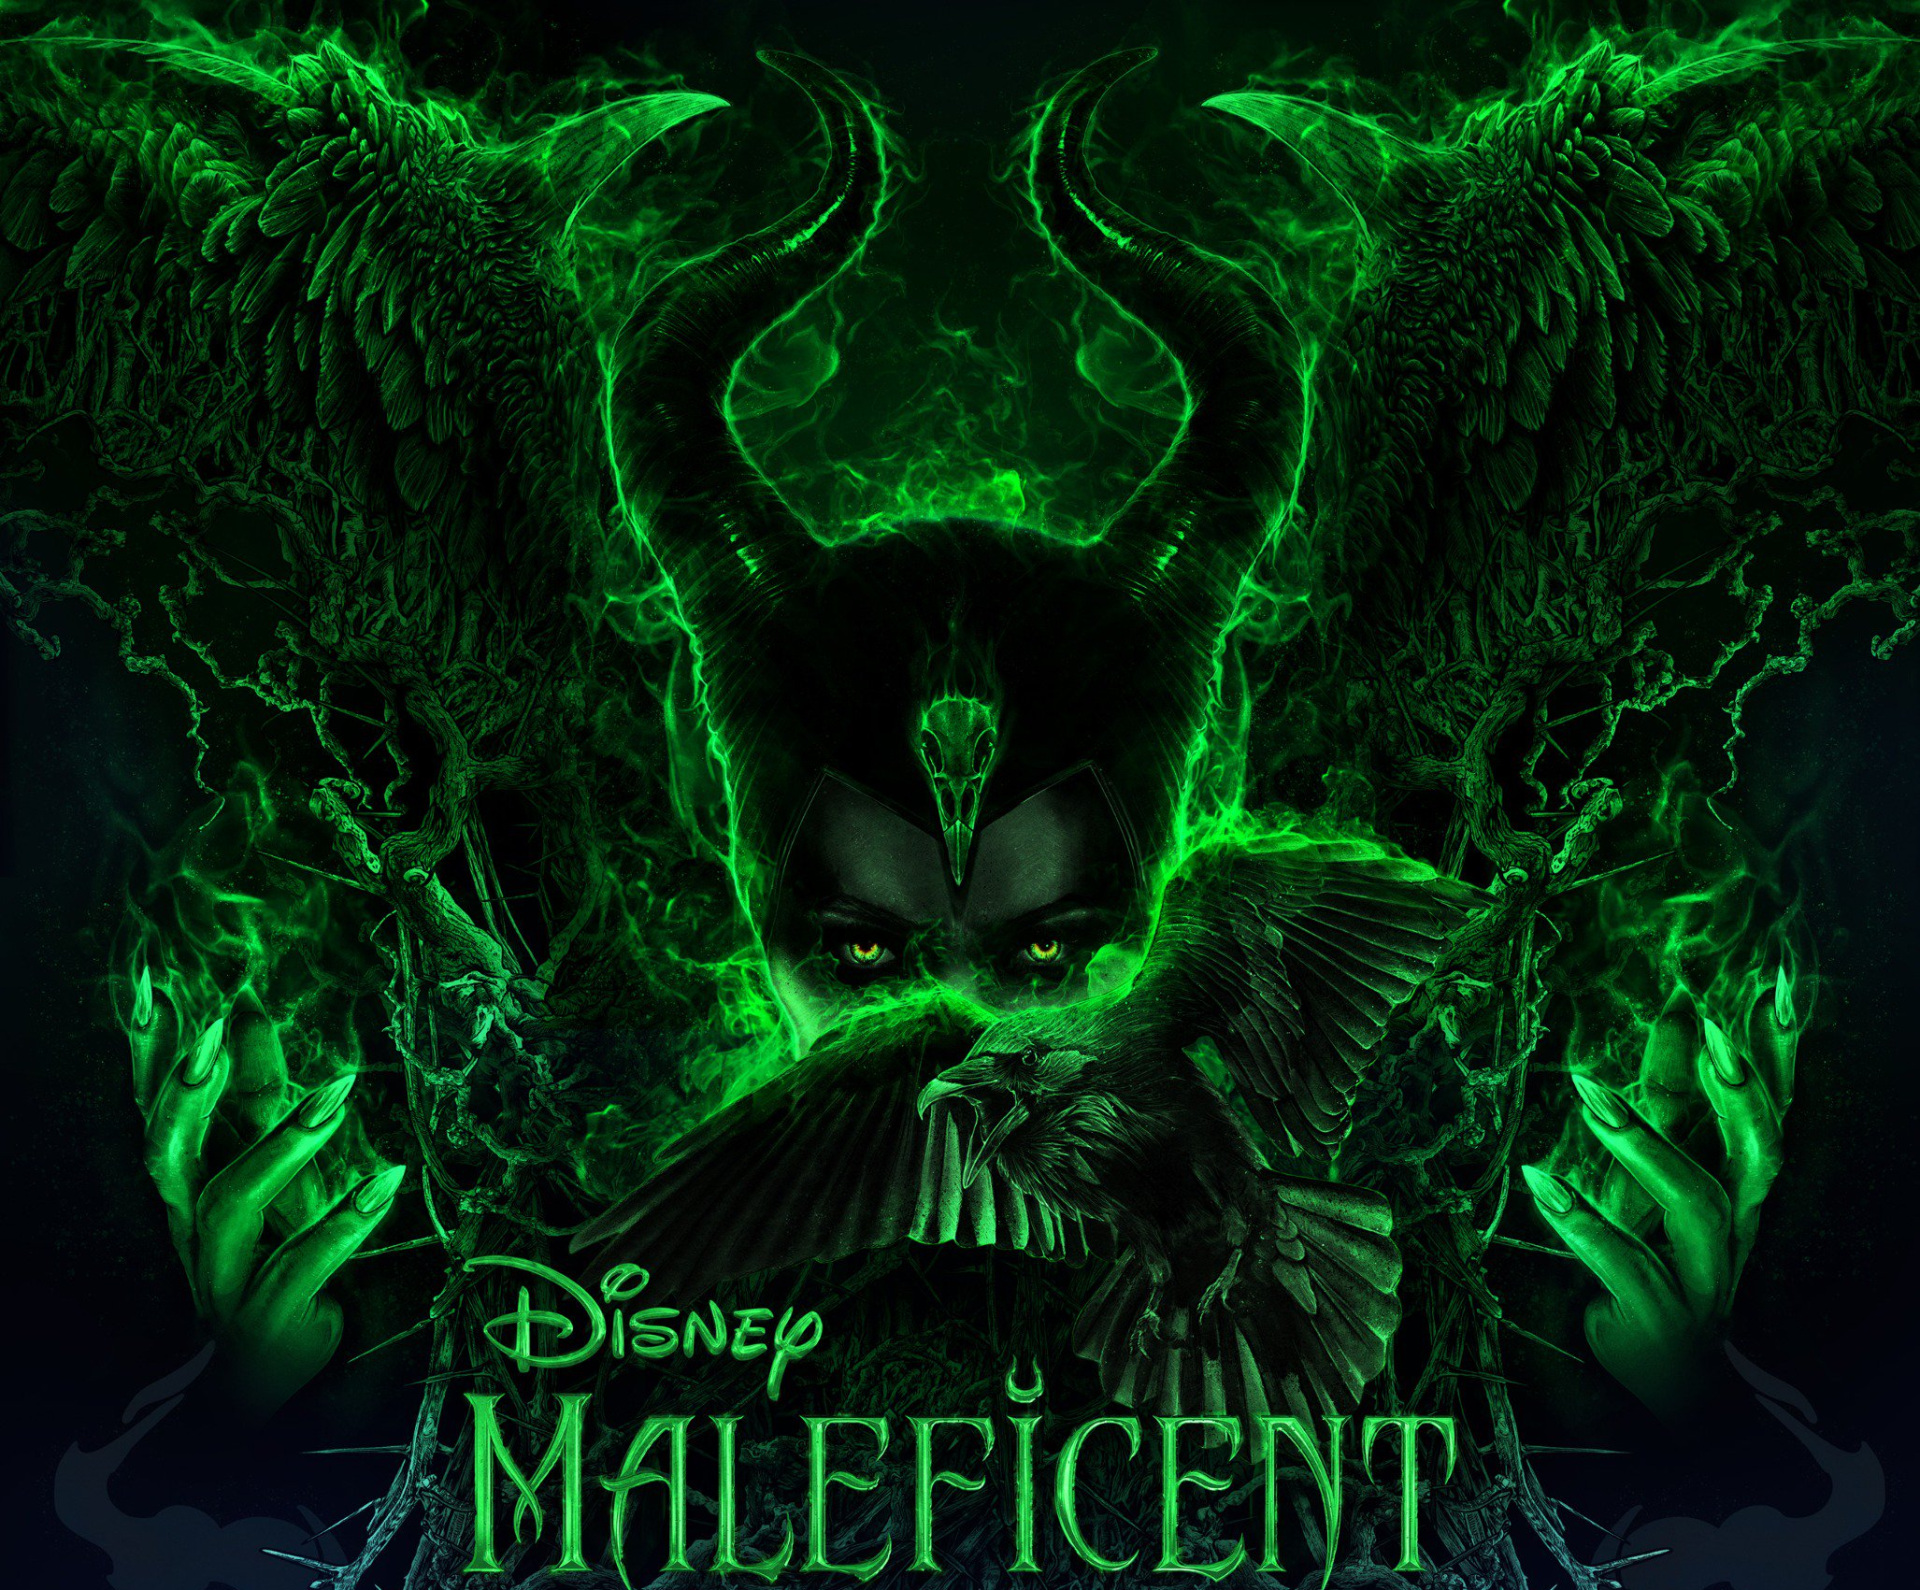 Maleficent Mistress Of Evil Hd Wallpaper Background Image